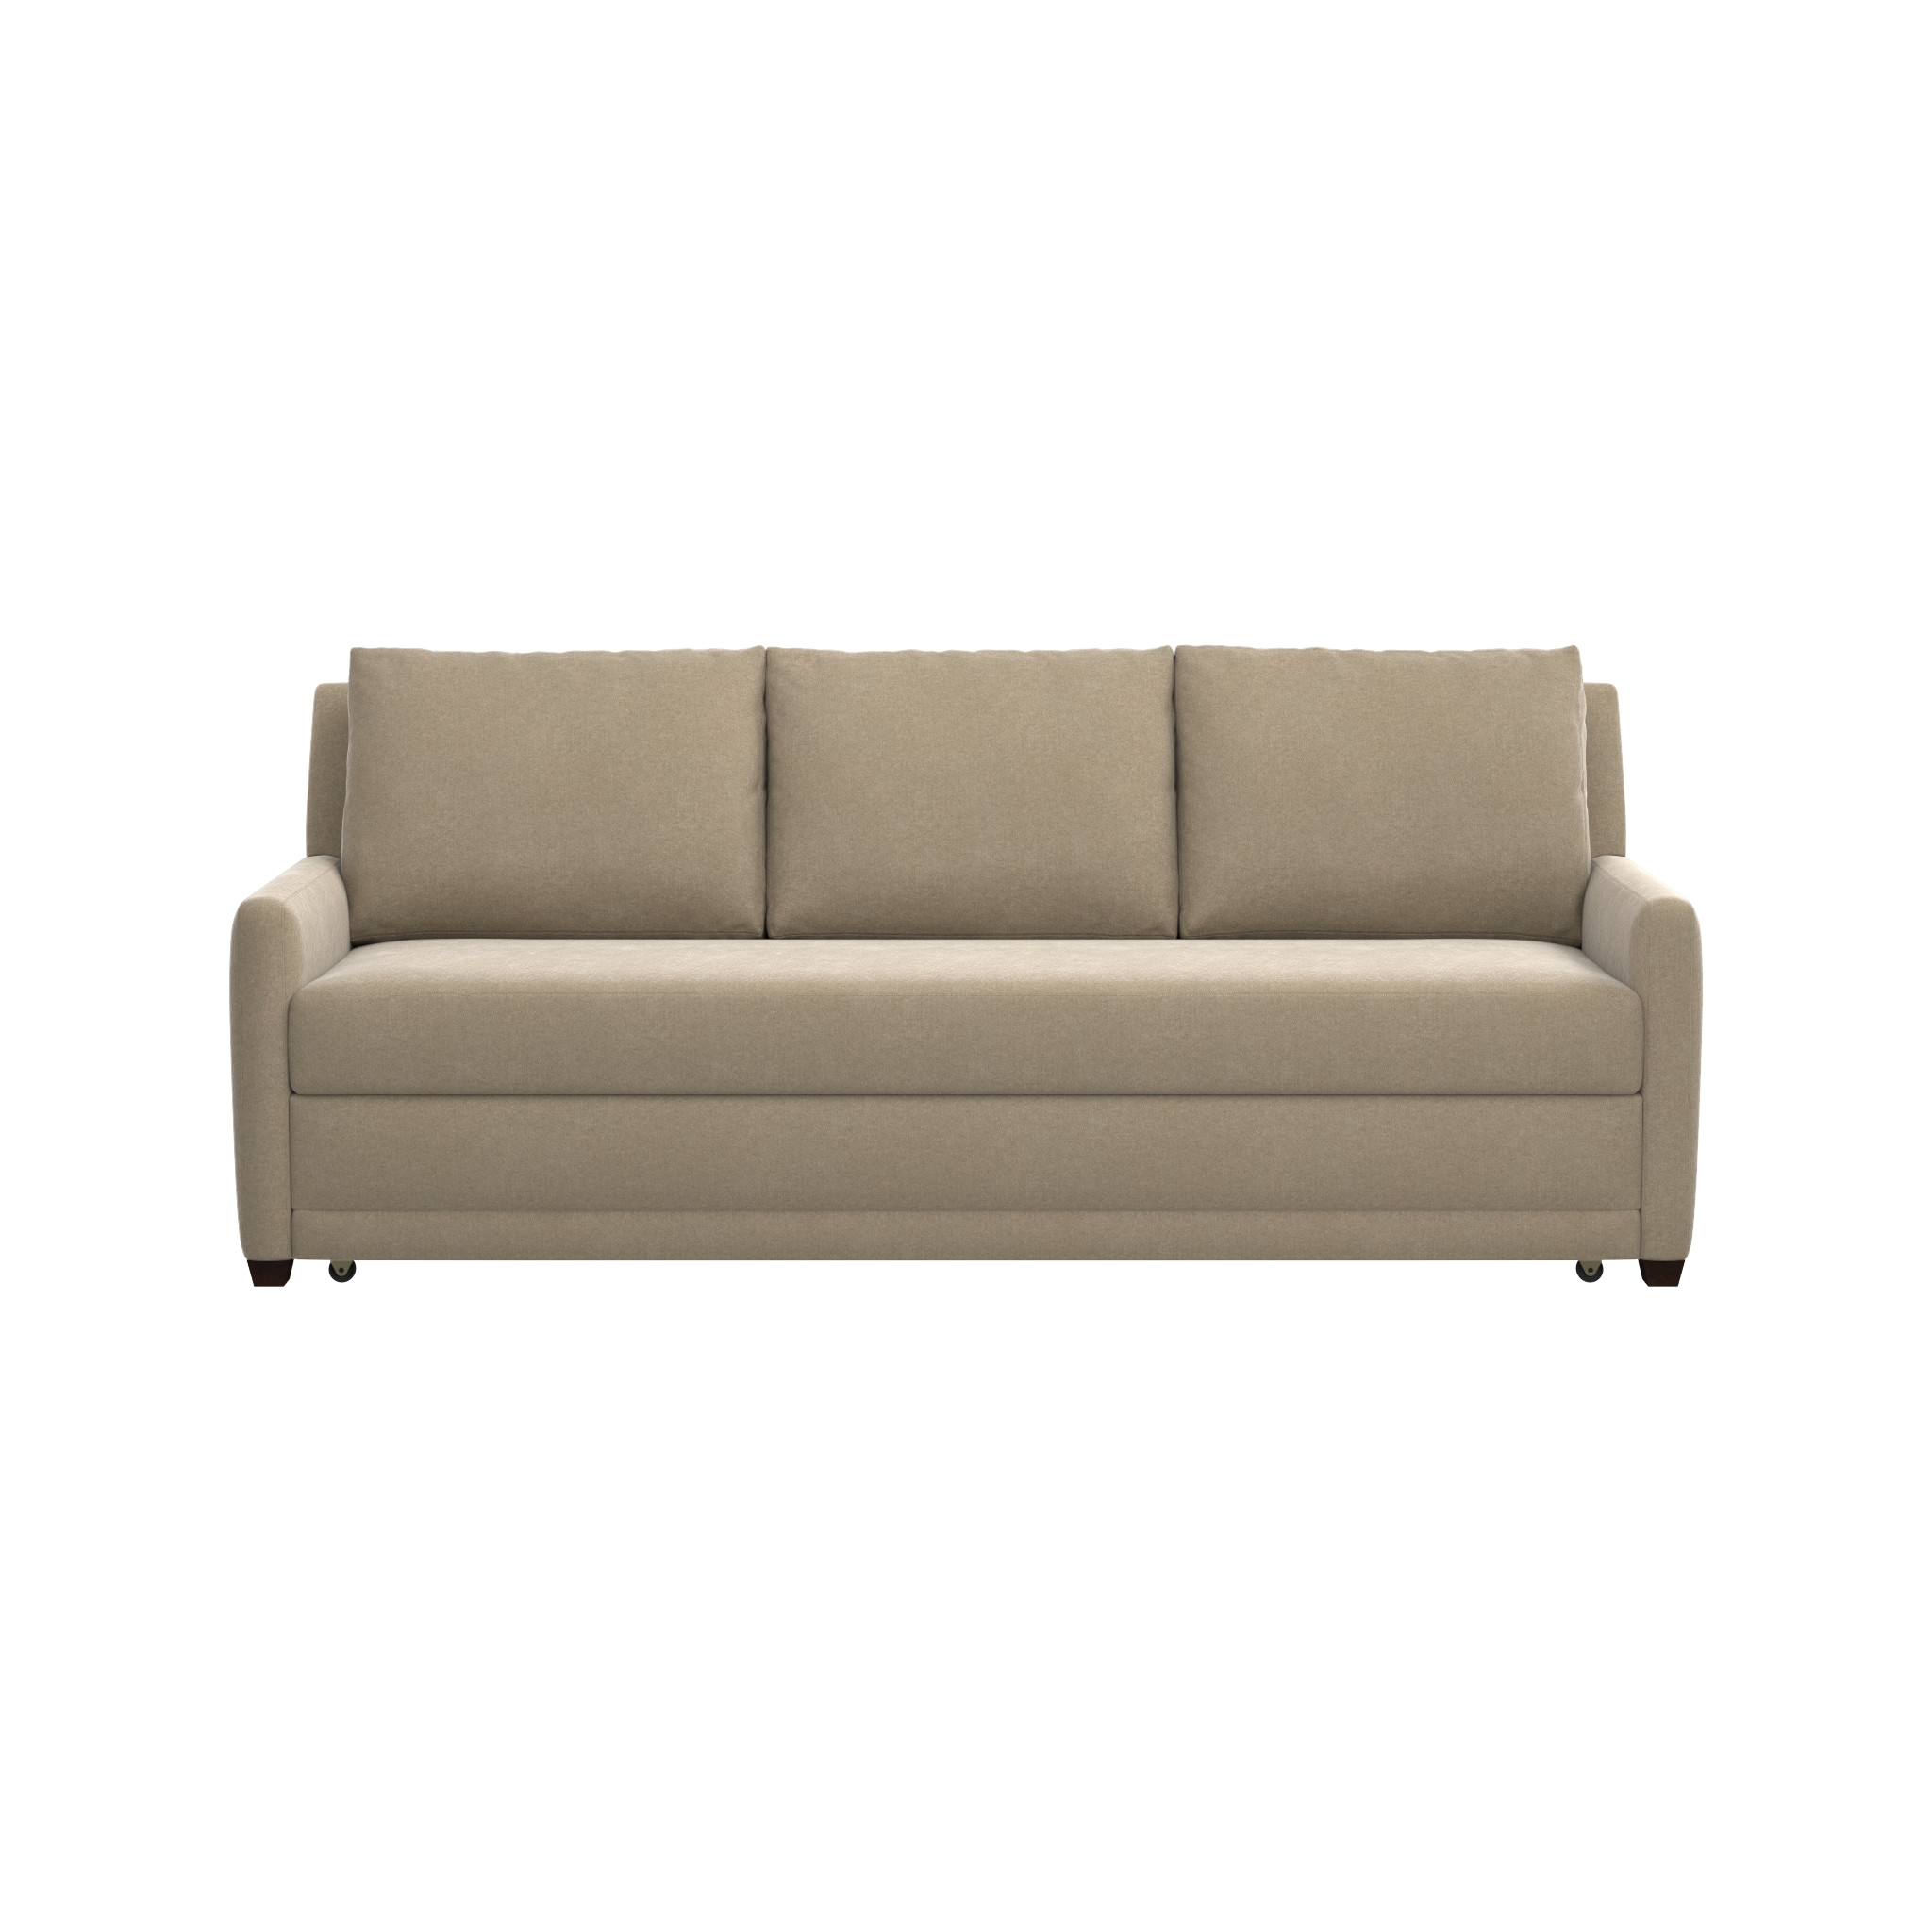 crate and barrel willow twin sleeper sofa leather cat protection 20 inspirations sleepers ideas